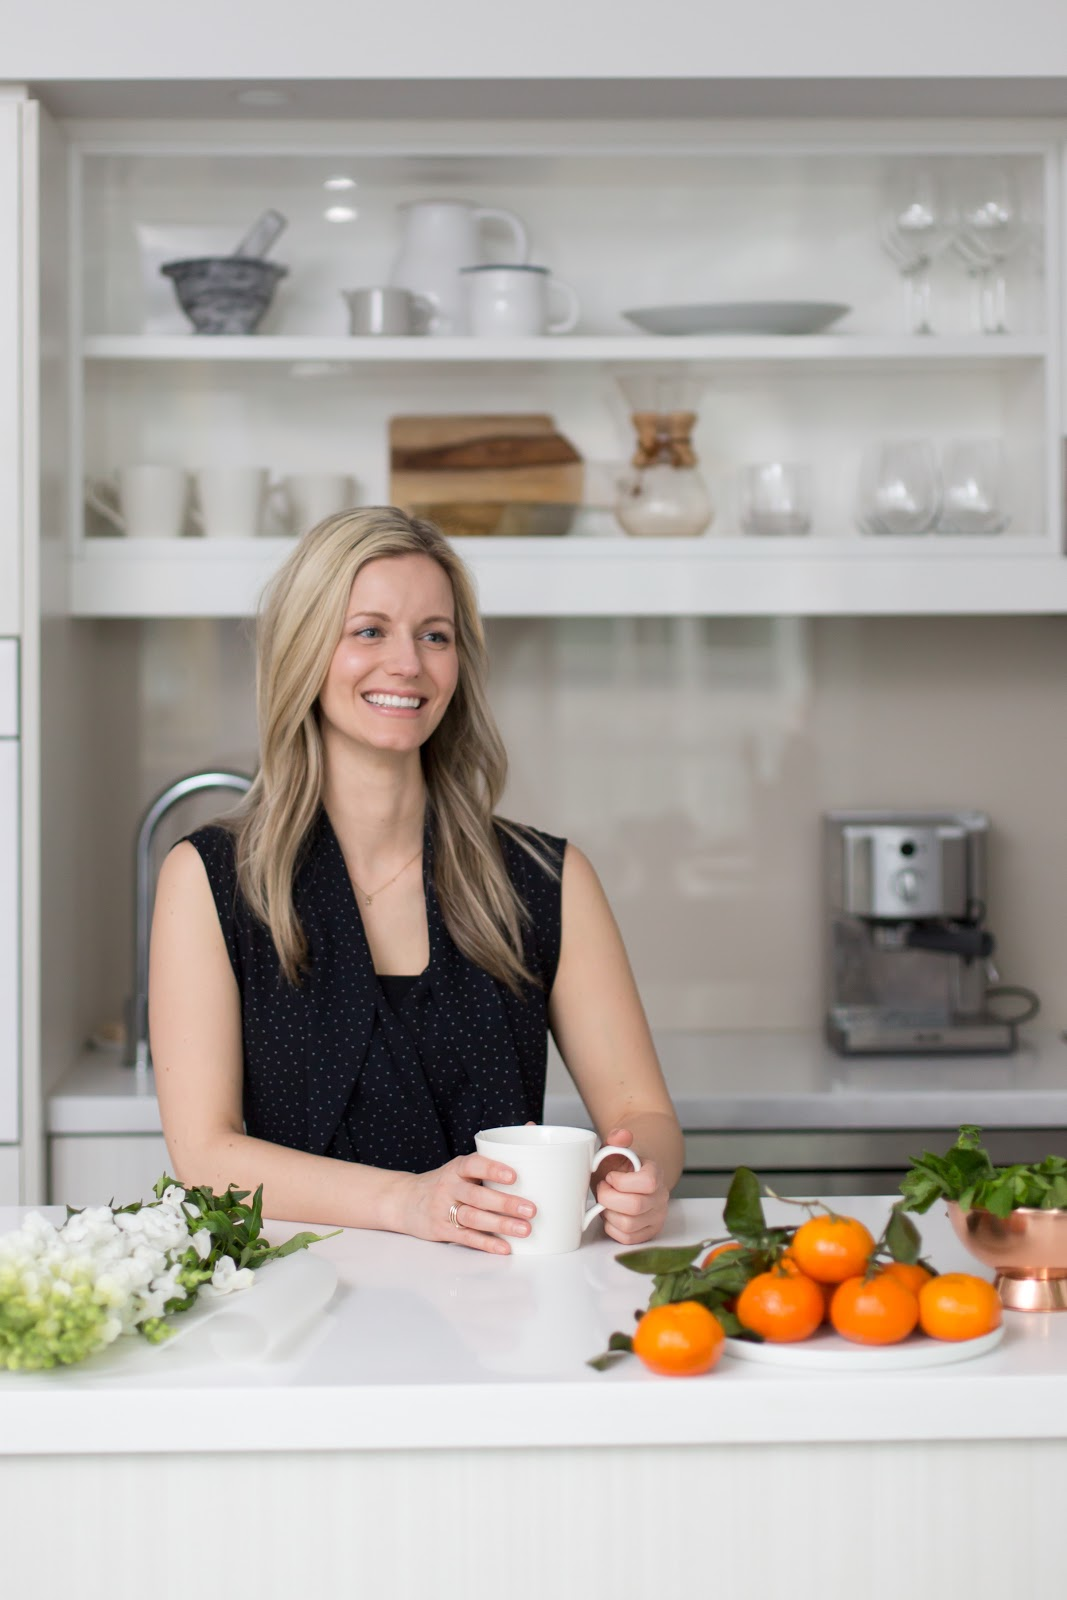 Food for Thought on Healthy Living: Doctor Laura Belus, ND